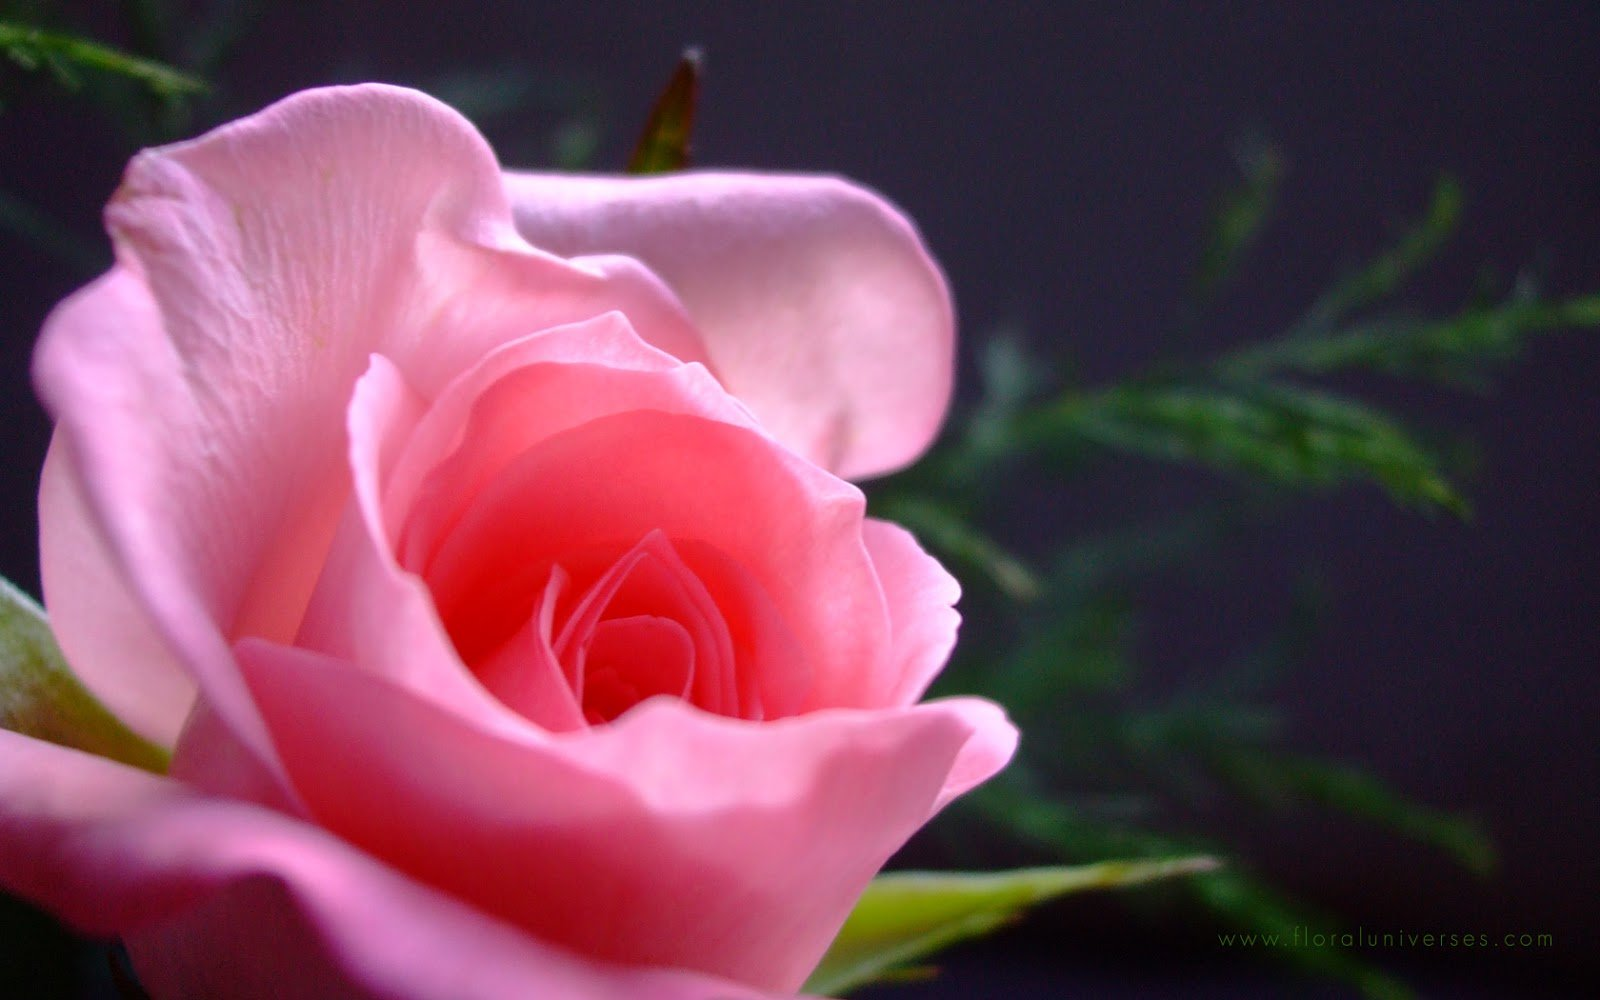 Free desktop wallpaper pink roses wallpapersafari - Pink roses background hd ...